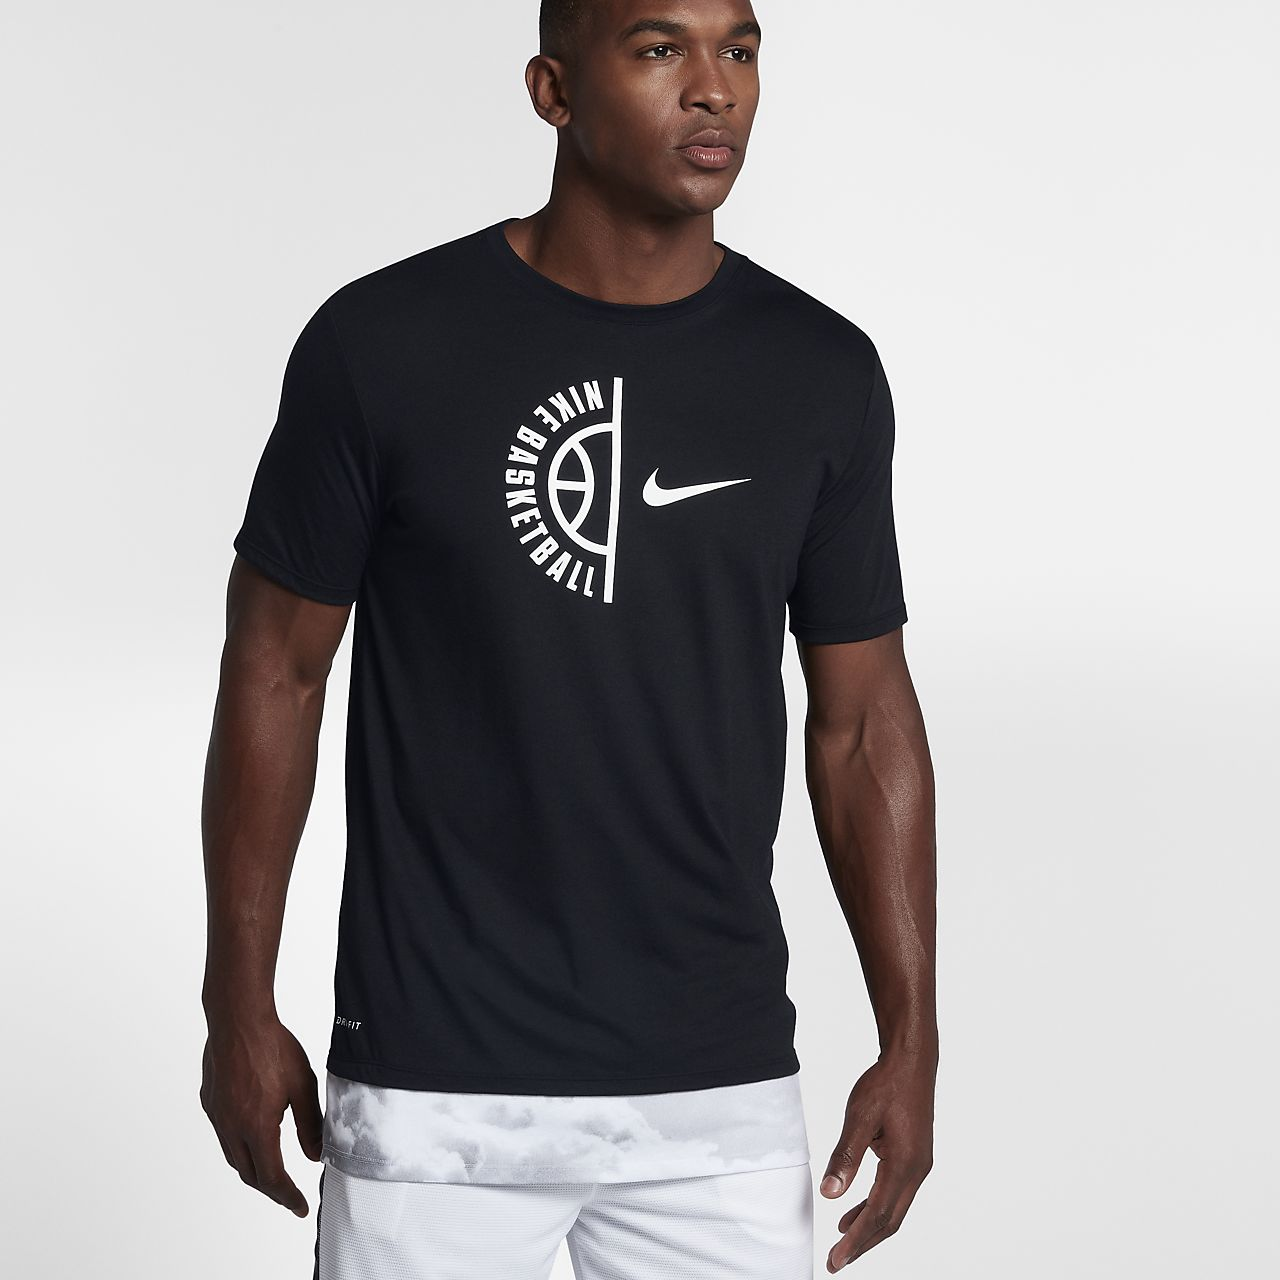 Nike Dry Men's Basketball T-Shirts White